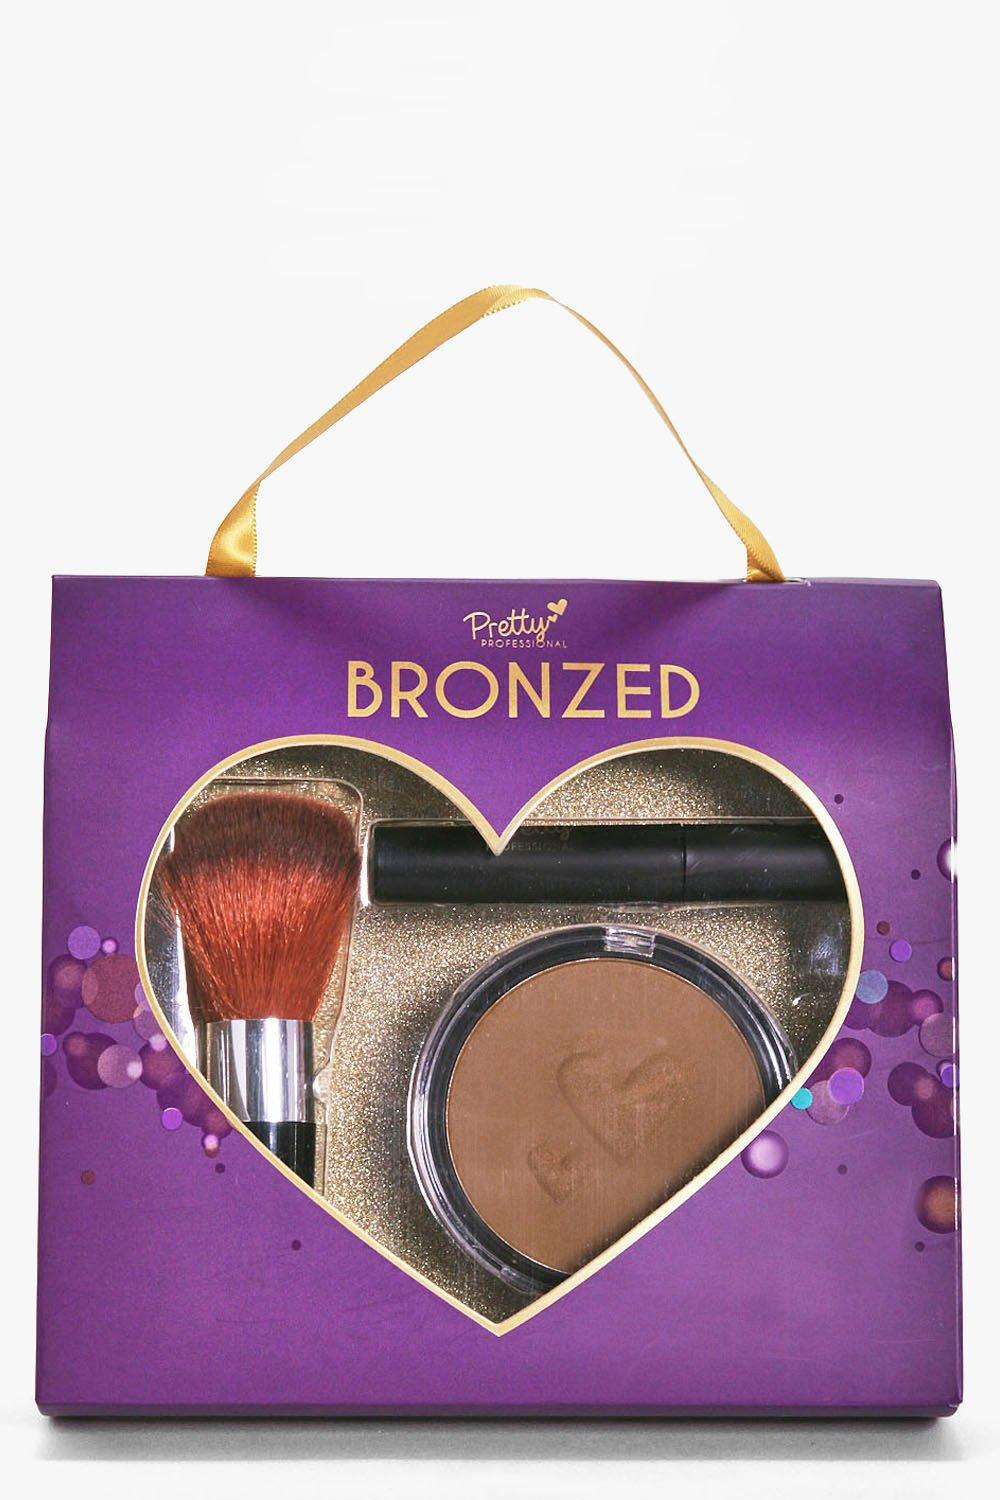 Bronzer Brush and Mascara Gift Set